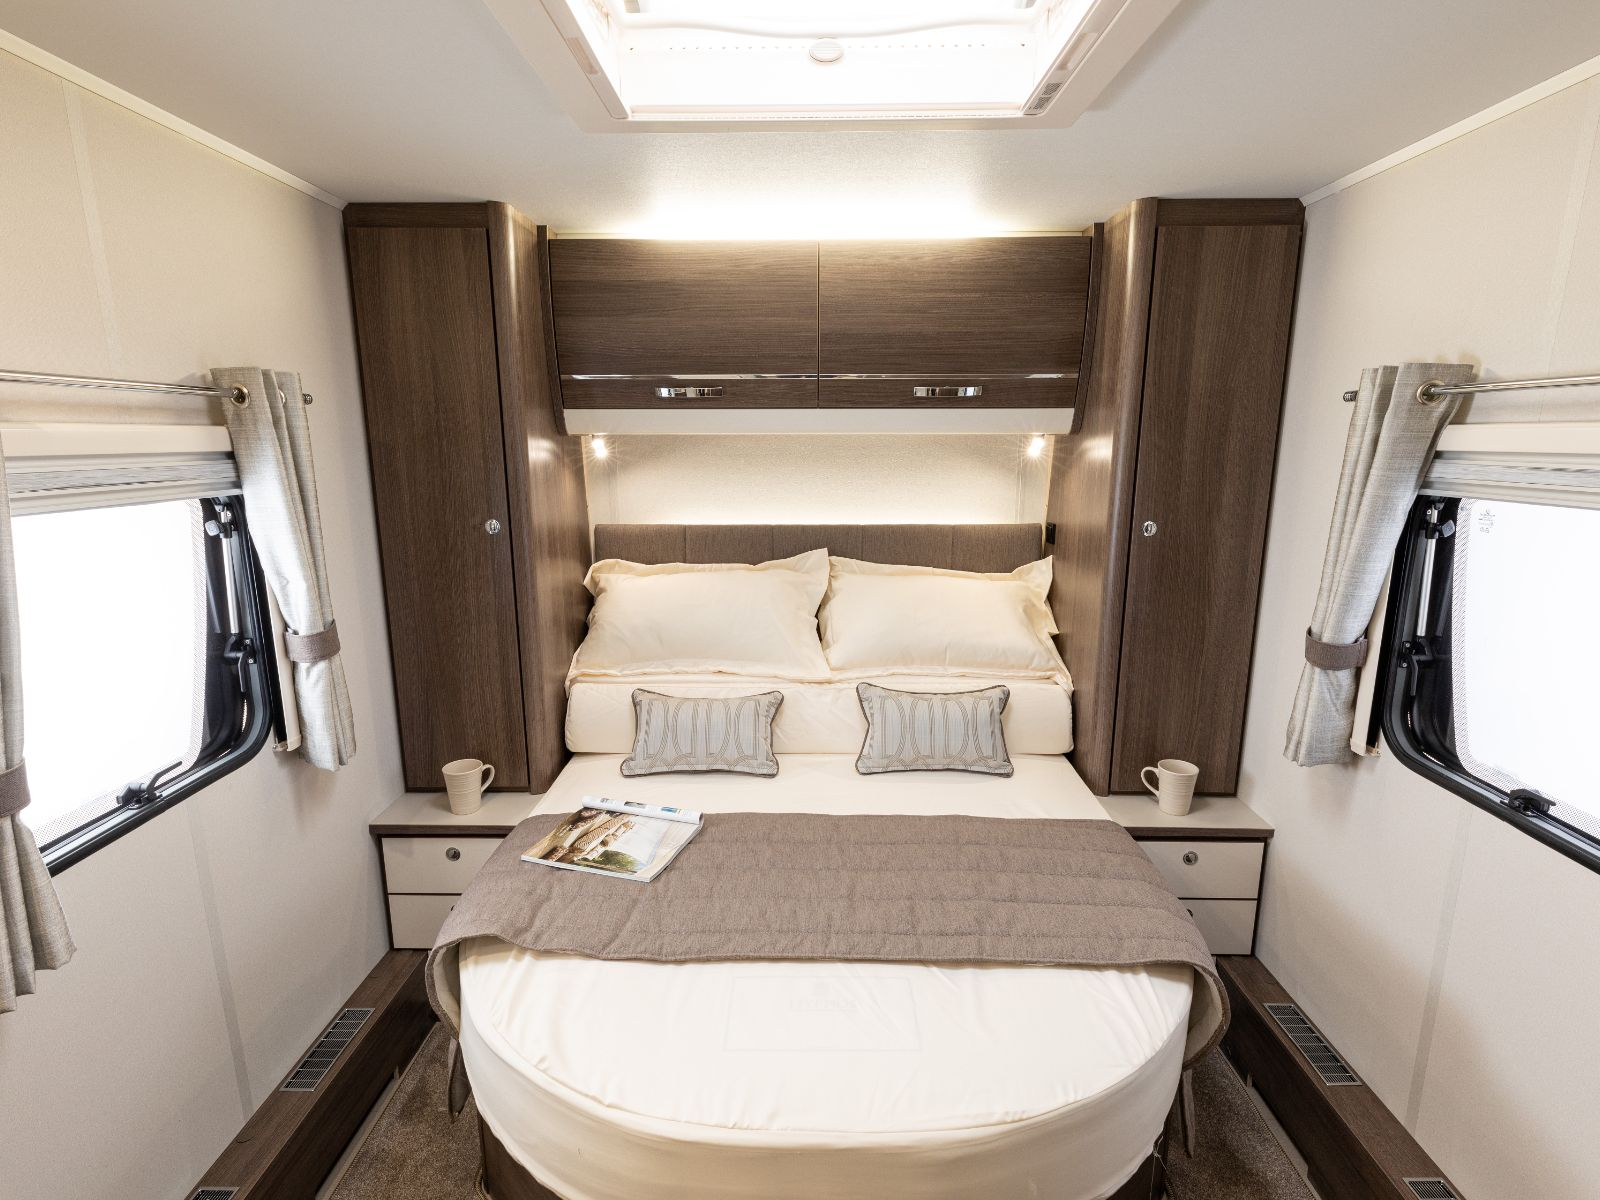 Bedroom layout featuring a double bed, overhead storage and windows either side'